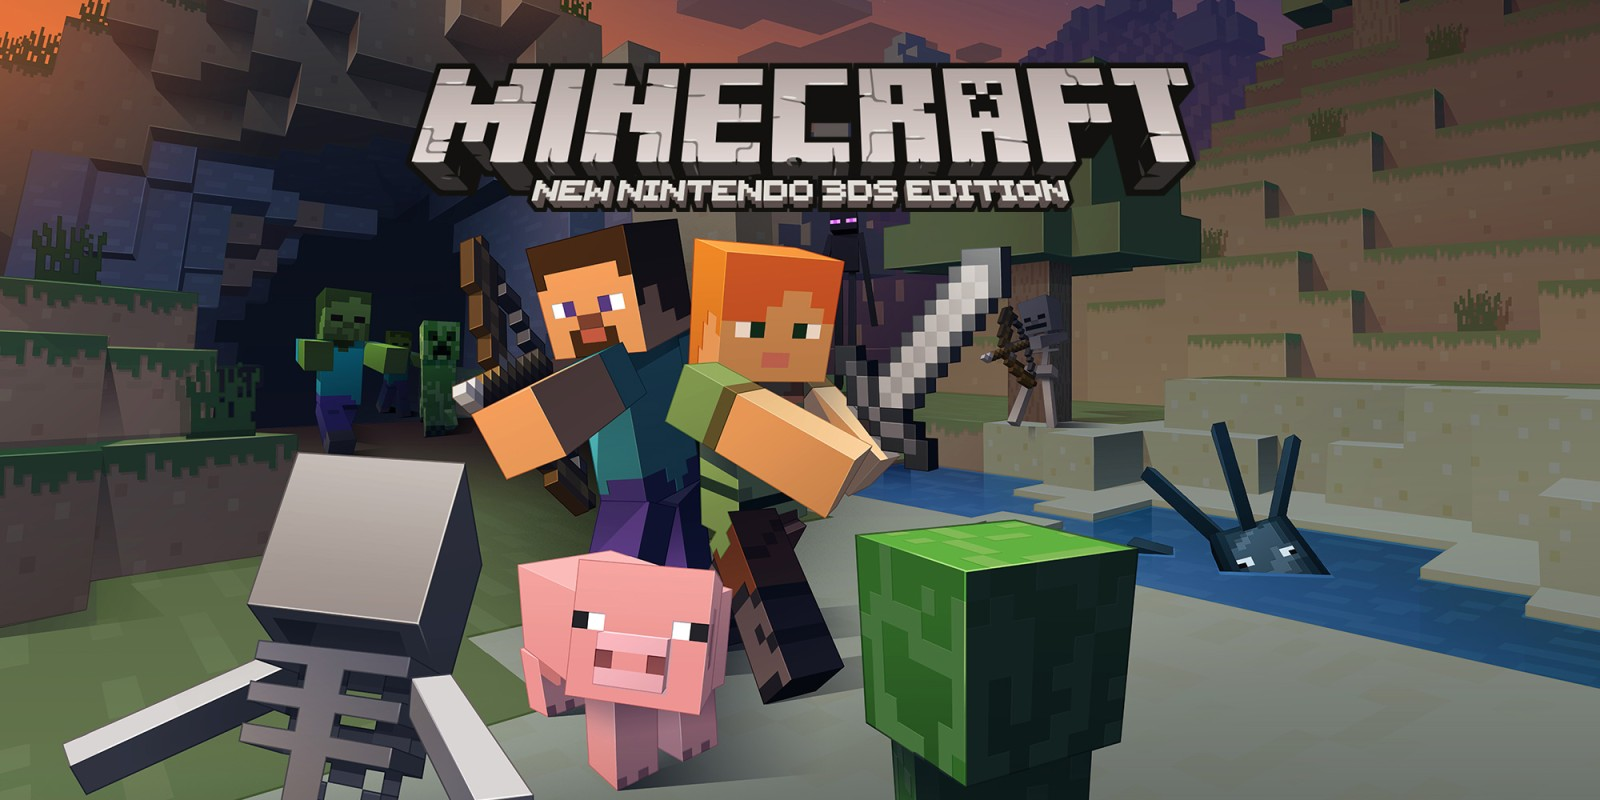 Minecraft New Nintendo DS Edition New Nintendo DS Spiele - Minecraft spielen kostenlos ohne download deutsch